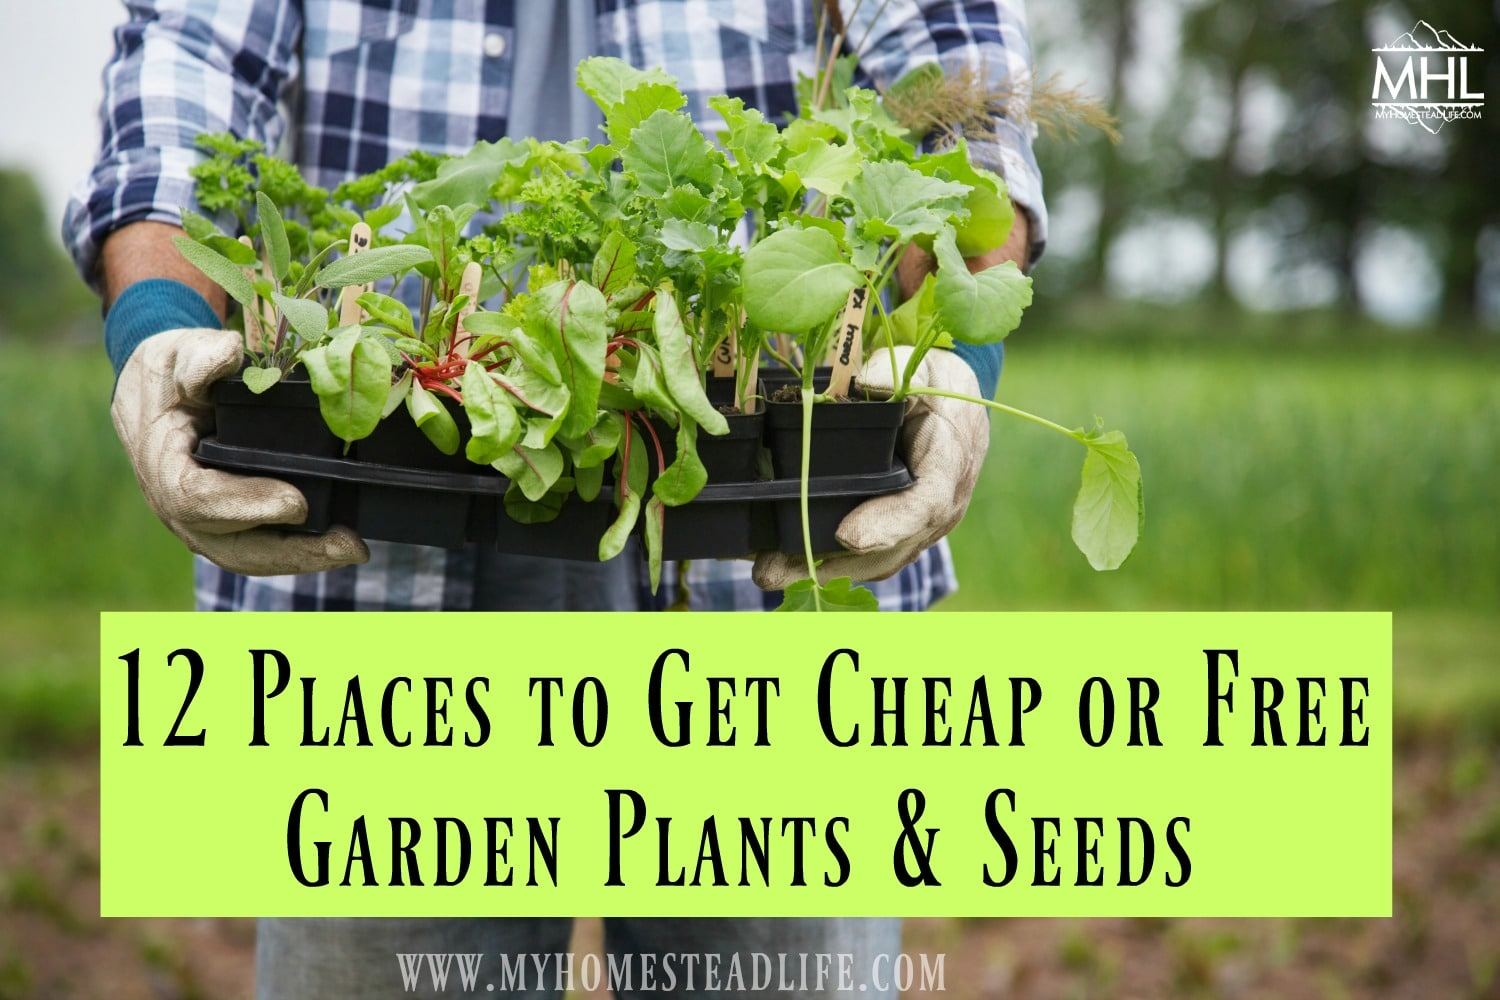 12 Places to Get Cheap or Free Garden Plants & Seeds